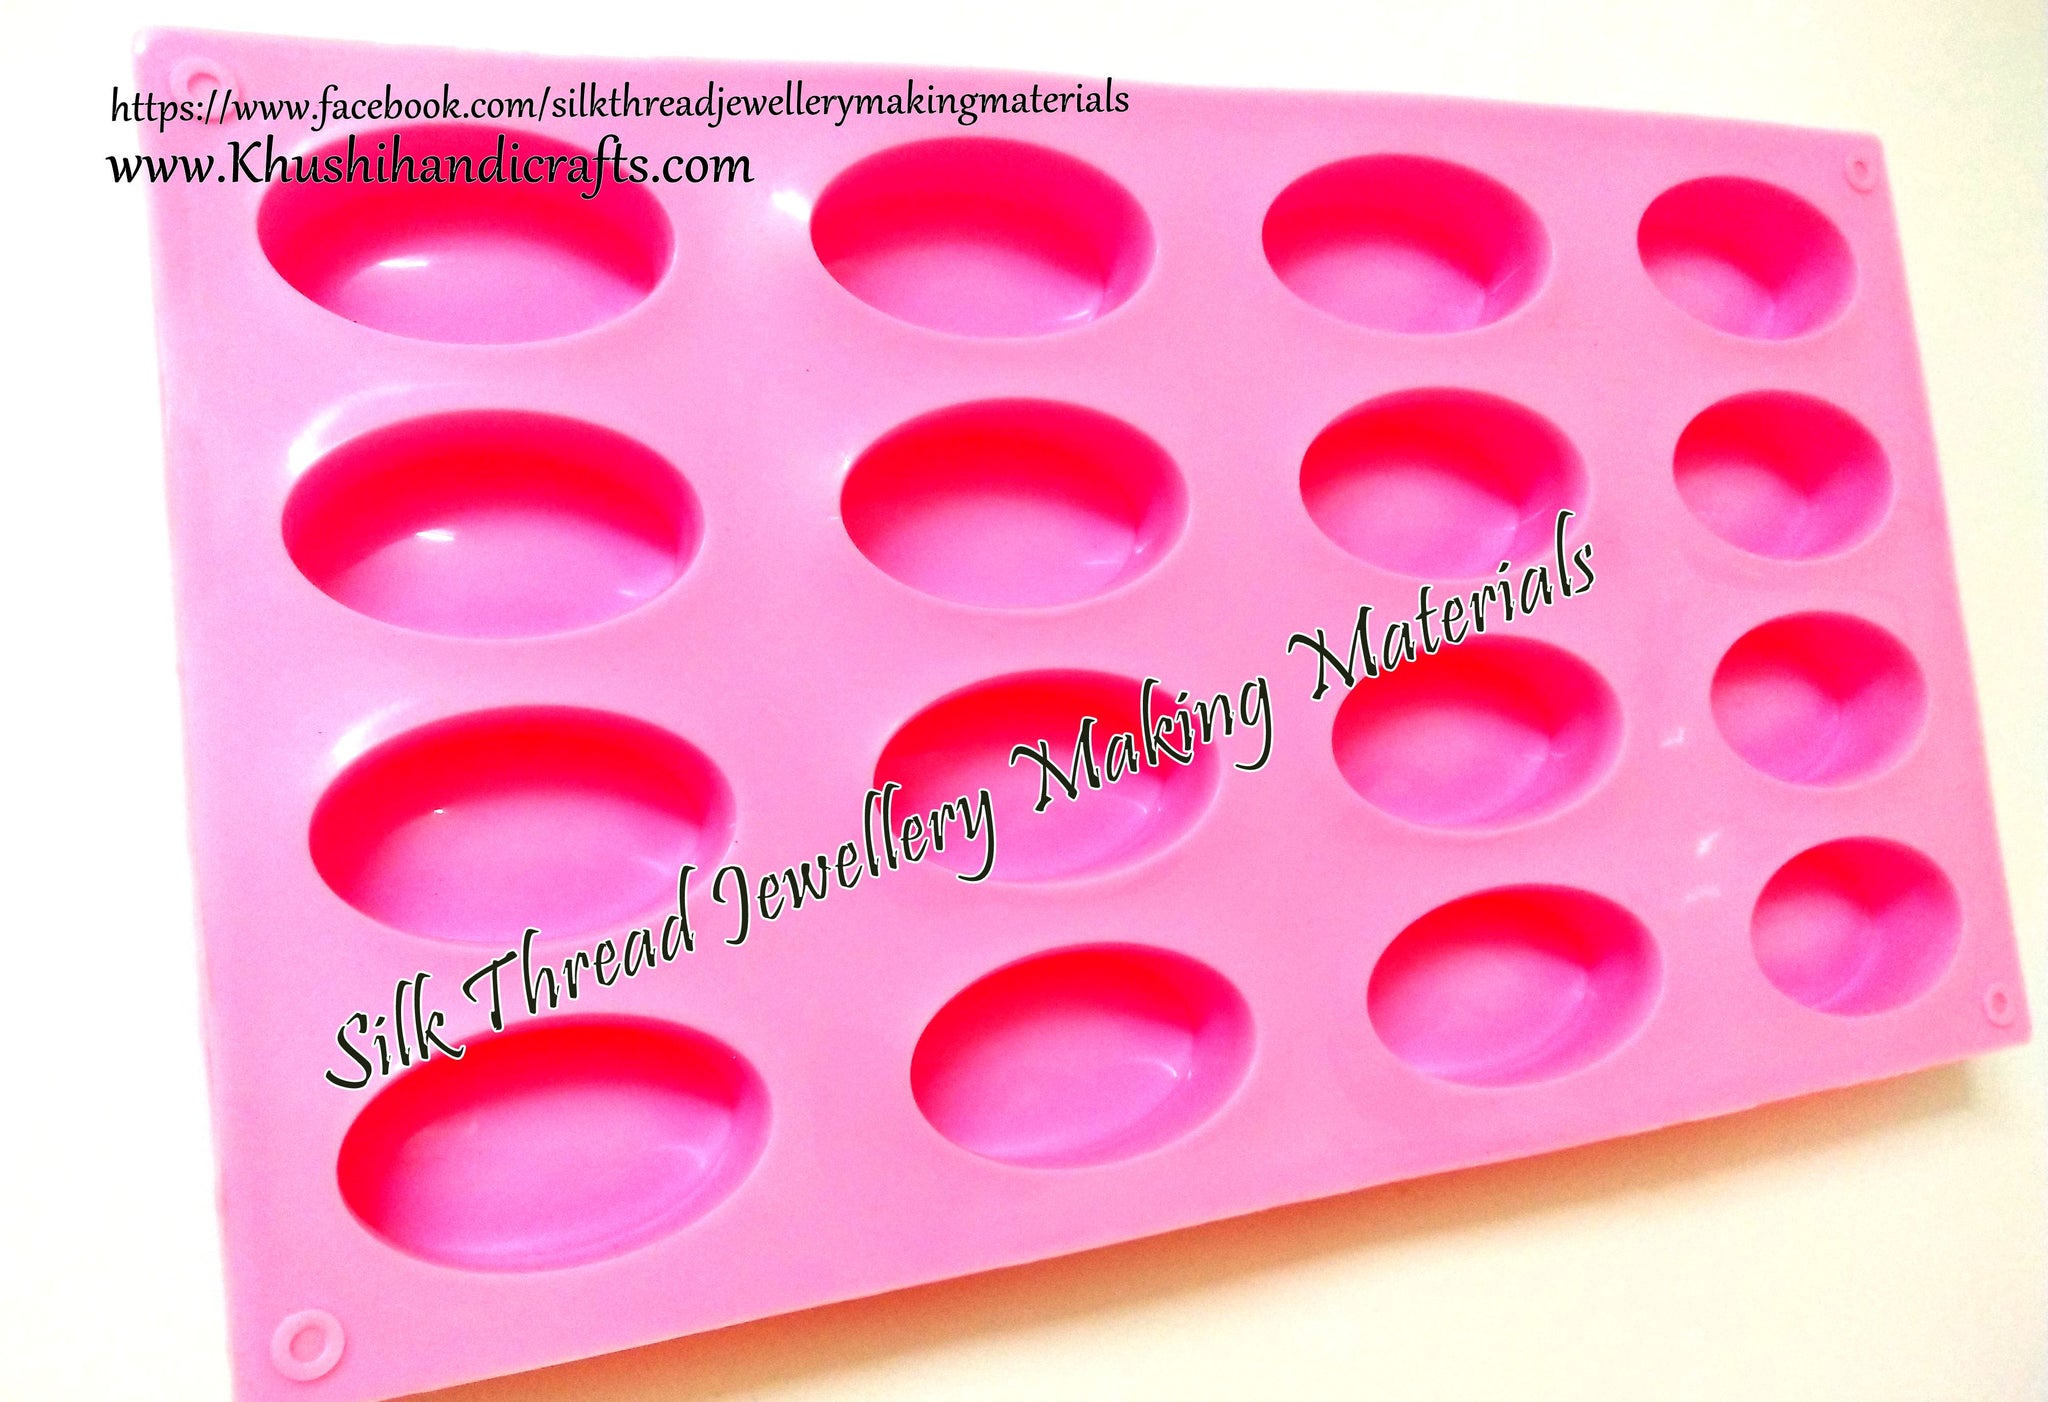 Oval silicone mold